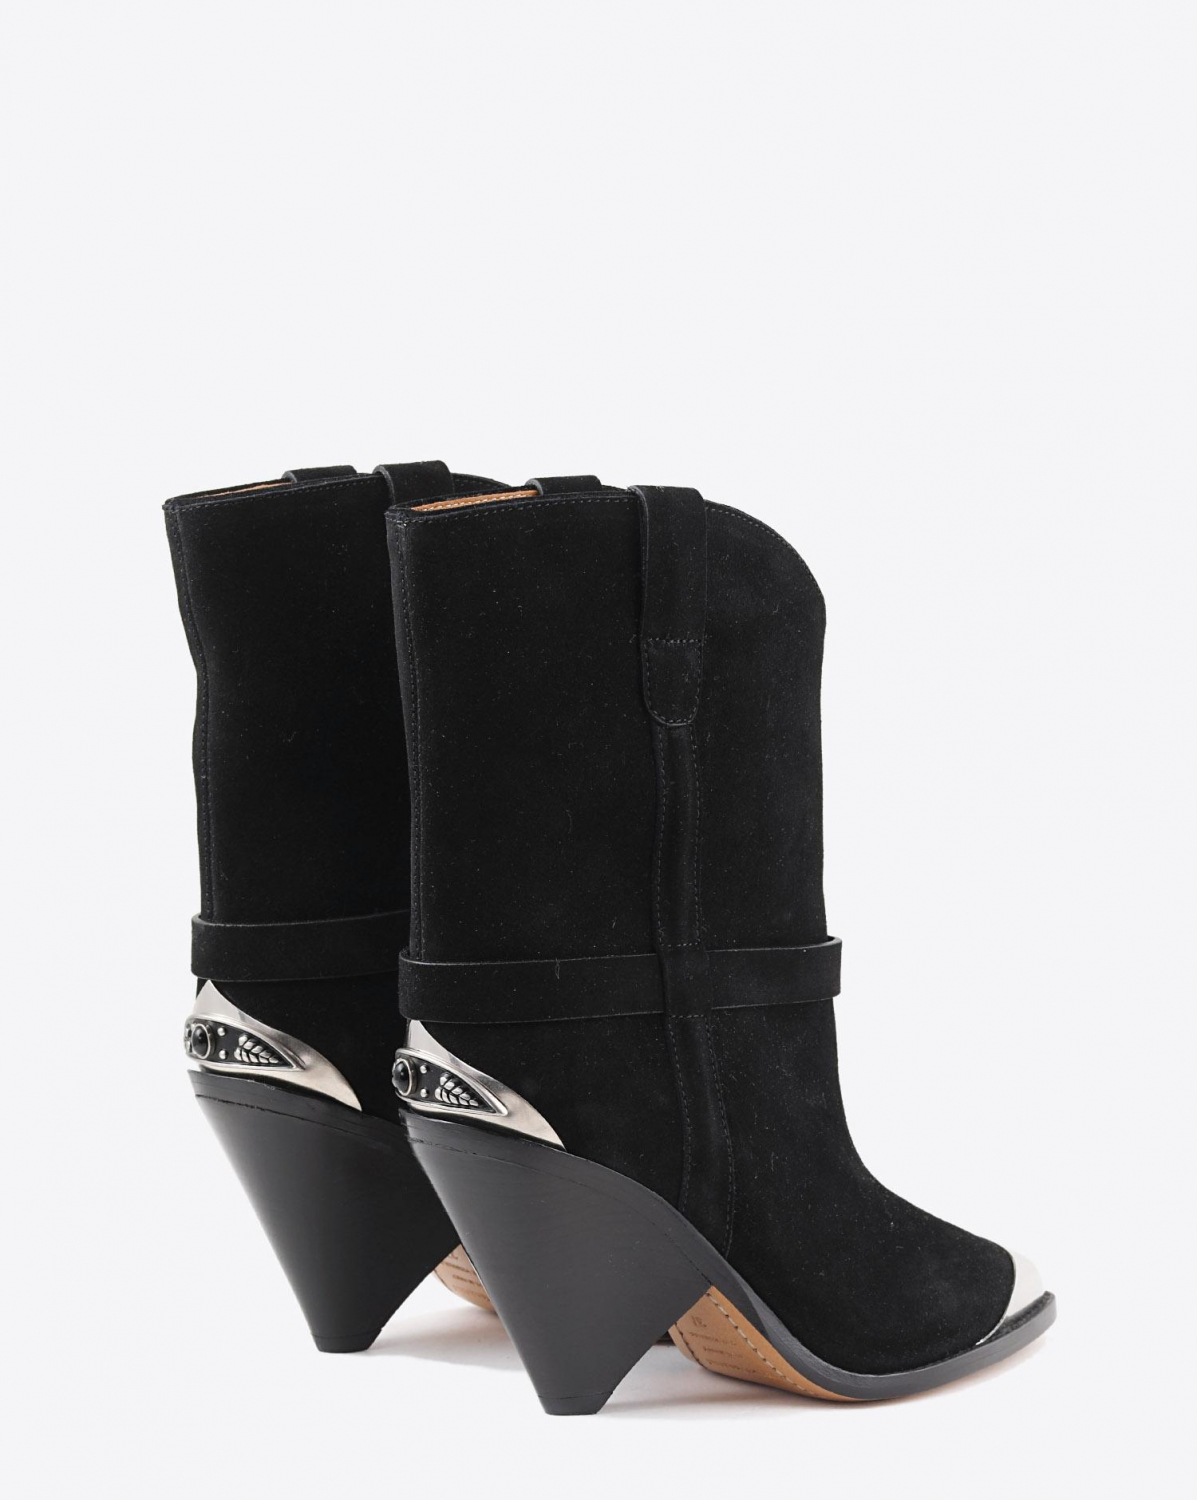 Isabel Marant Etoile Boots LAMSY - Suede Black